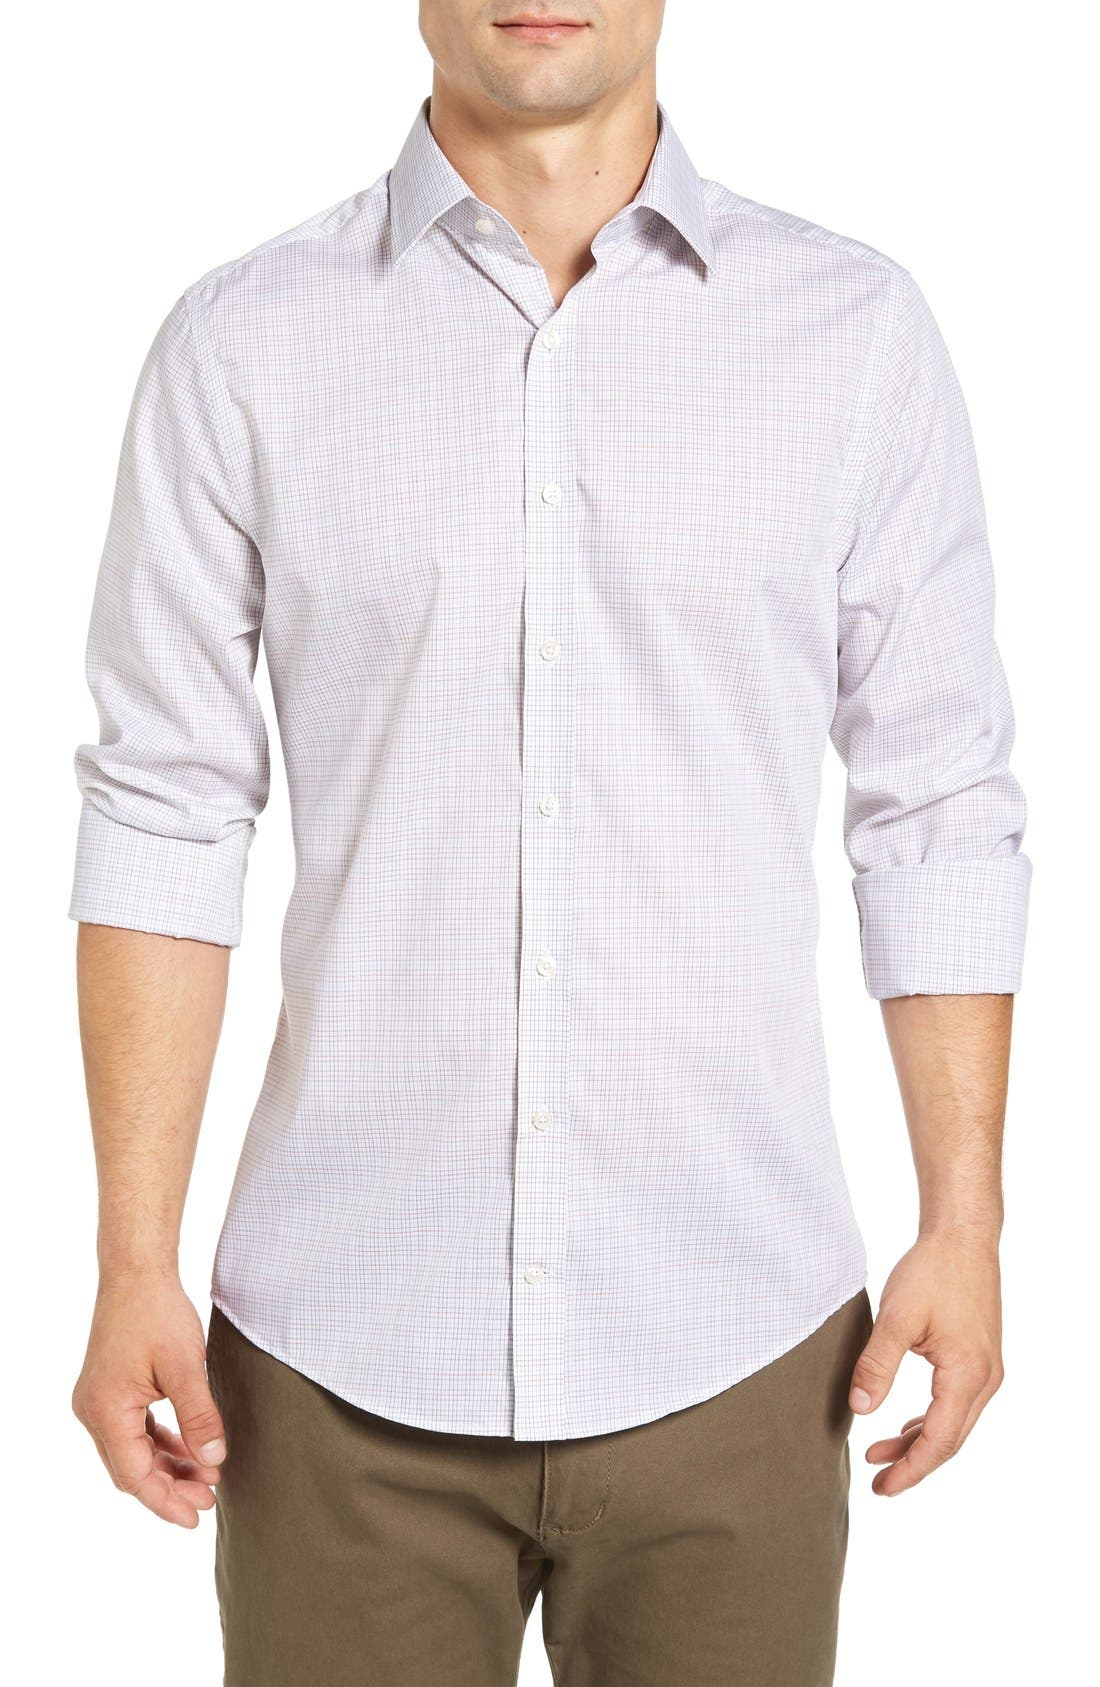 Gant 'Royal Oxford' Extra Trim Fit Tattersall Sport Shirt